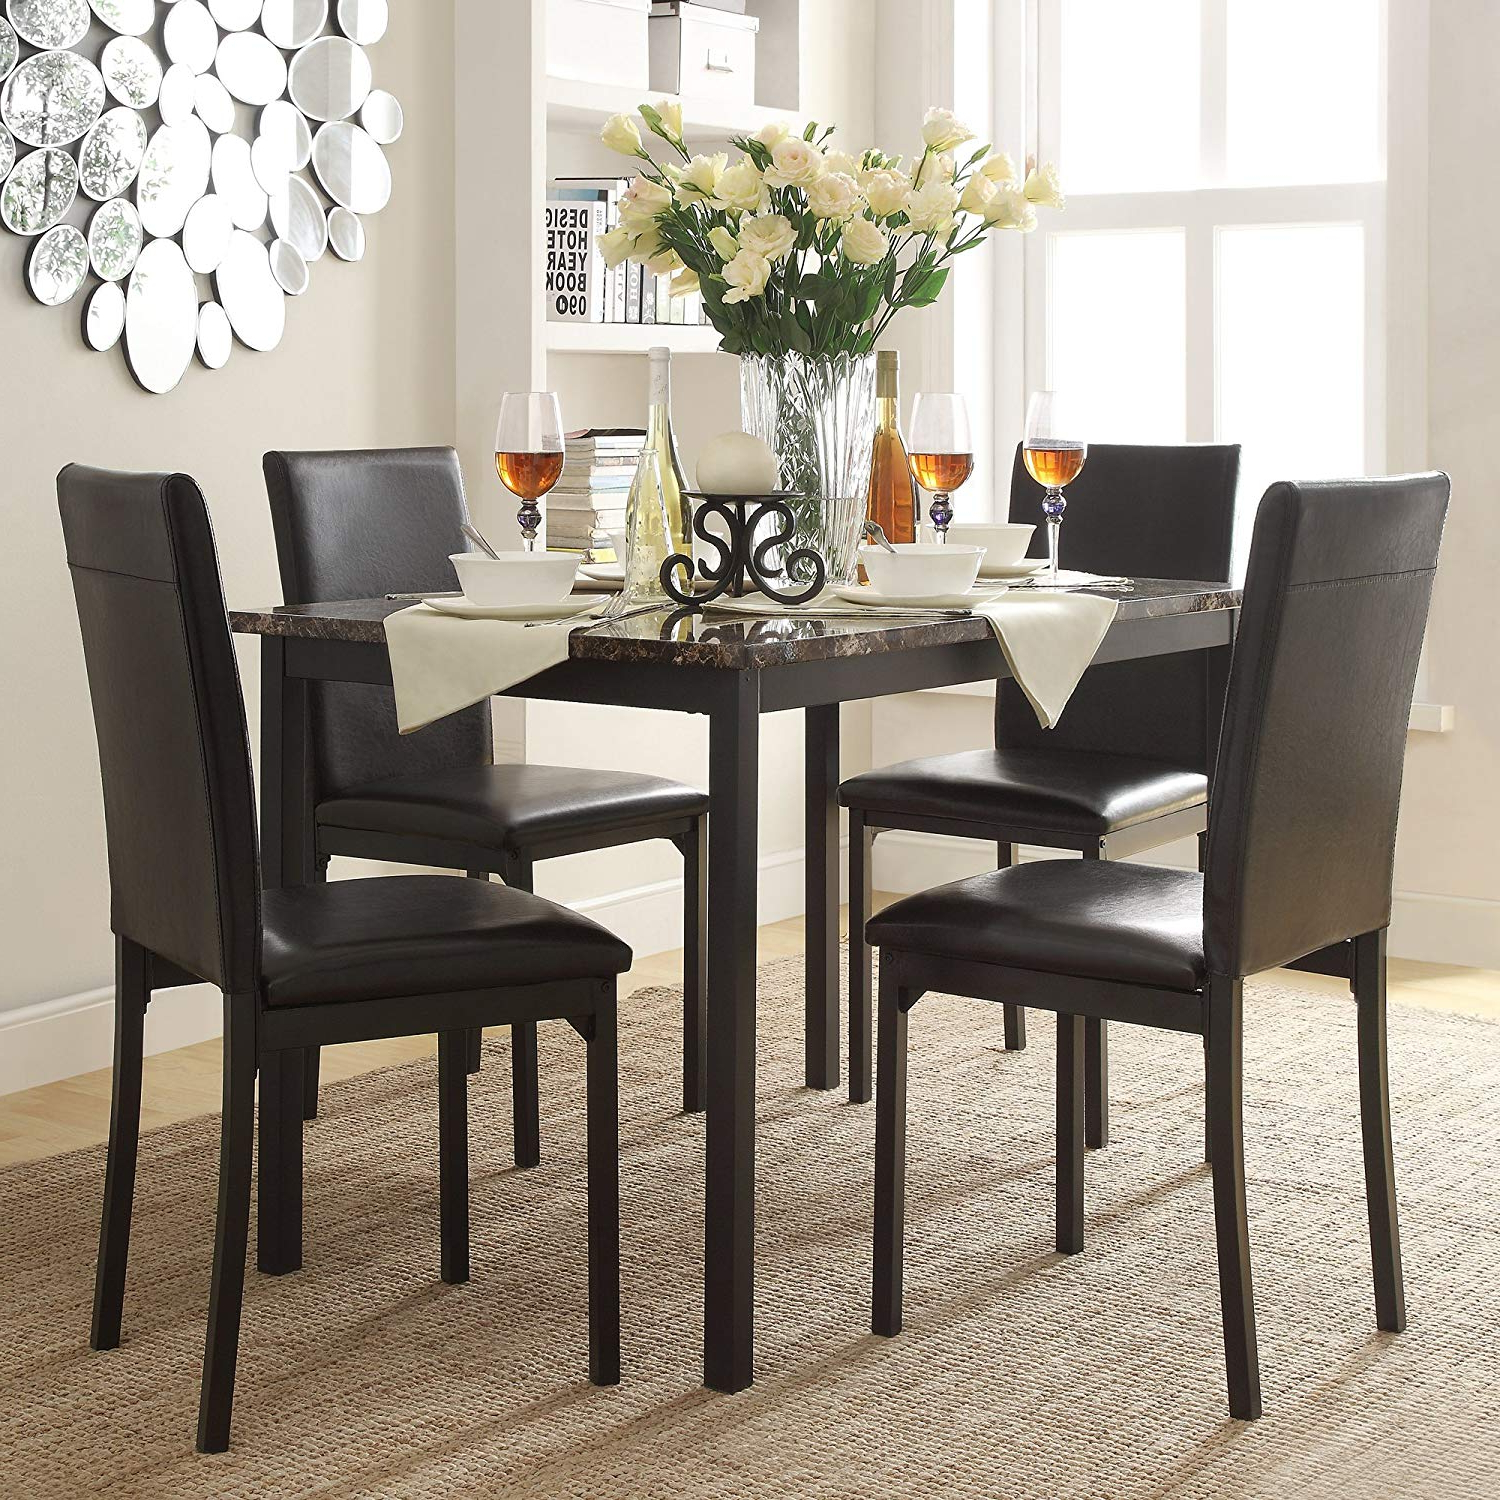 Faux Marble Finish Metal Contemporary Dining Tables Within Most Current Amazon – Faux Marble Table And 4 Faux Leather (View 11 of 25)